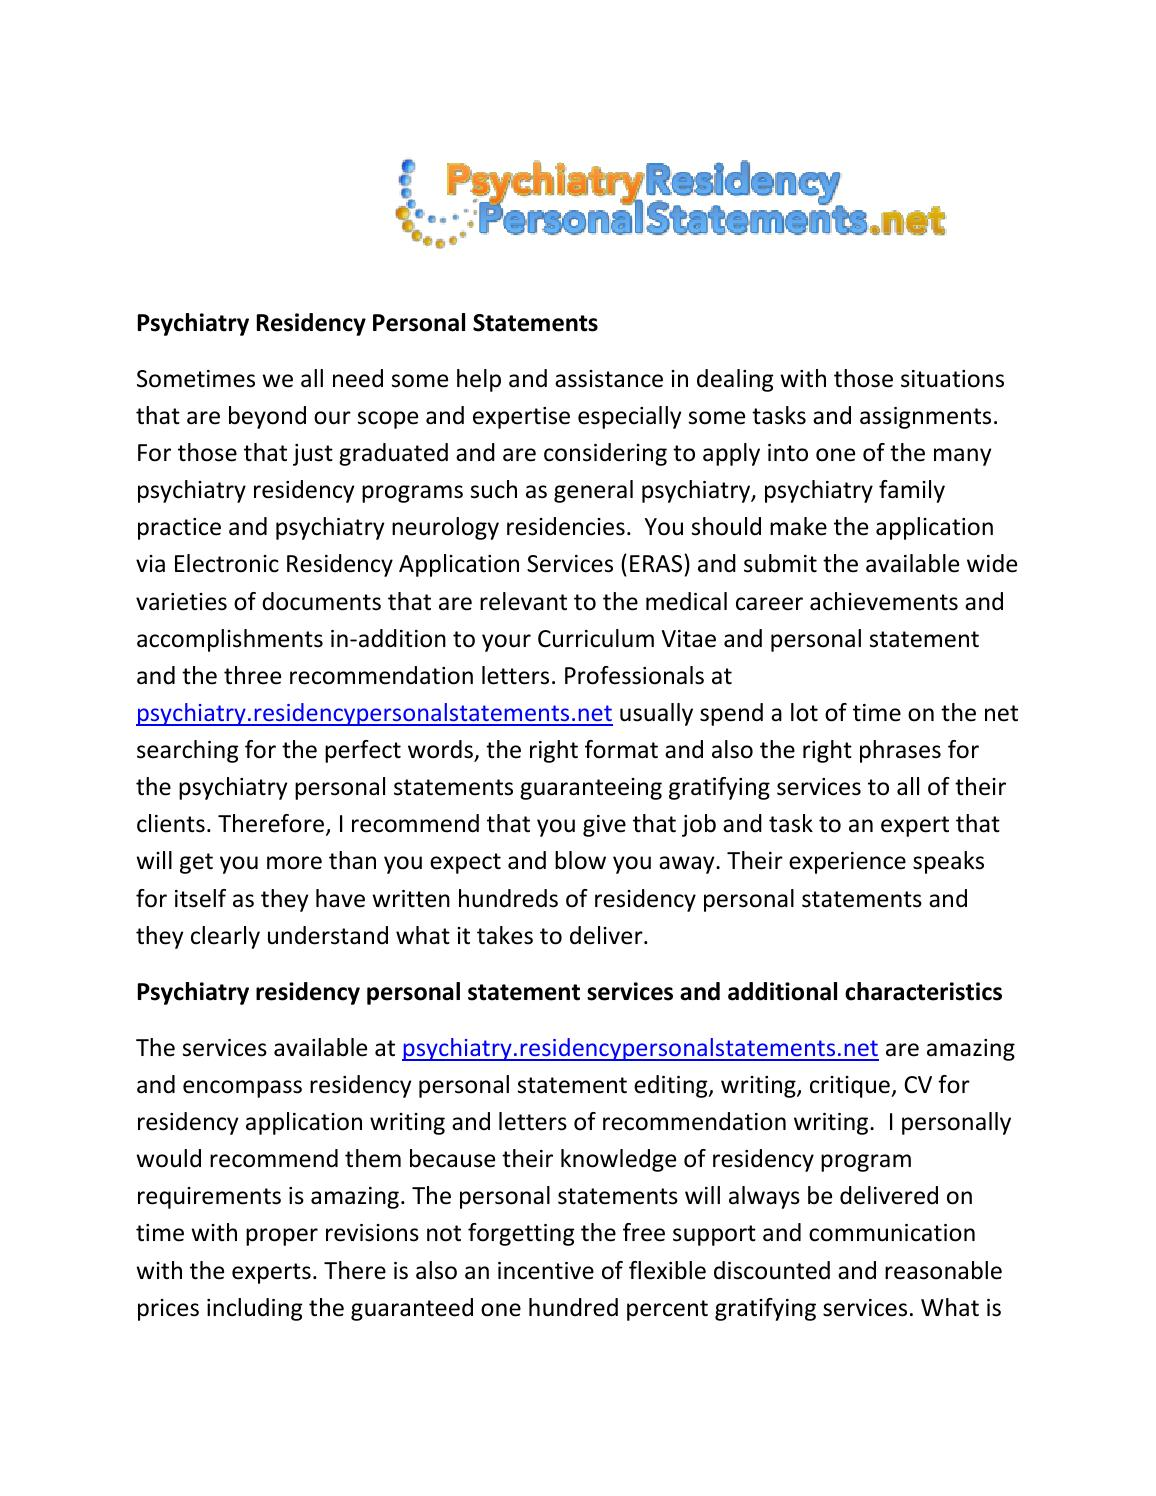 residency application personal statement help Learn how the pediatric residency personal statement fits into the application process and how our service can assist you.